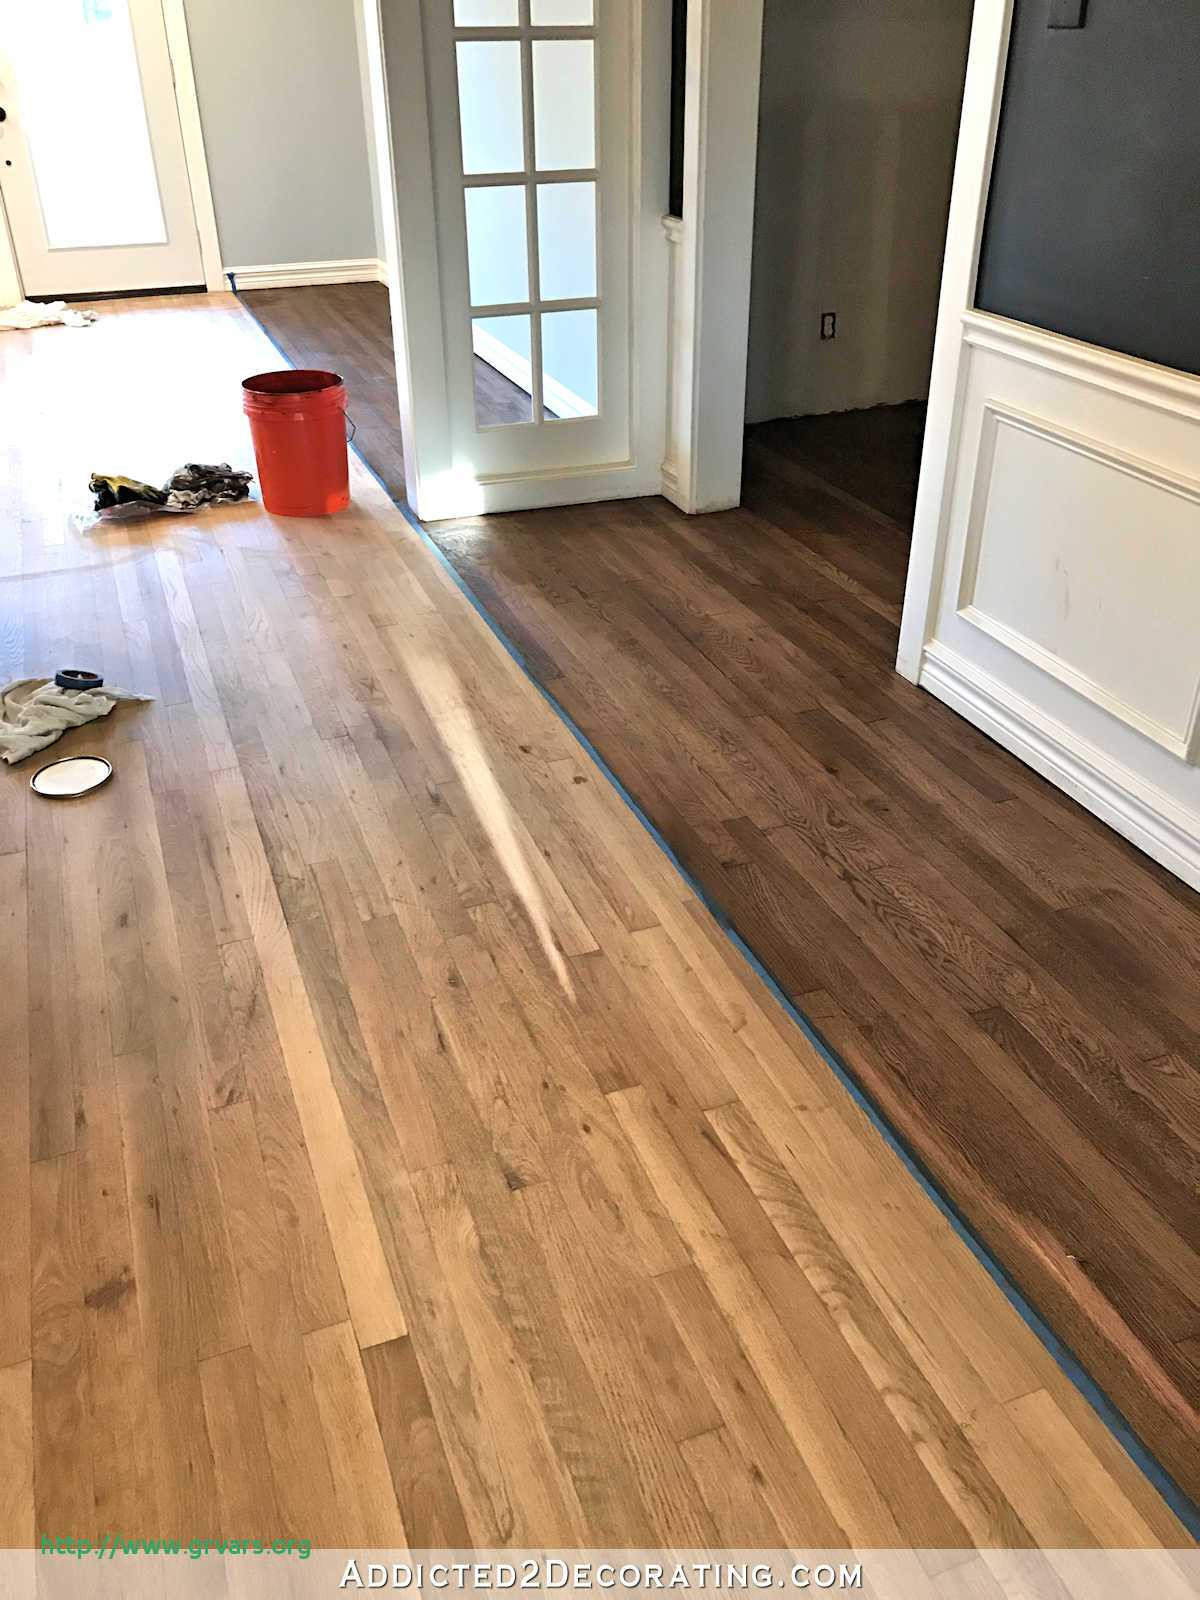 average price per square foot hardwood floor refinishing of 25 meilleur de cost to restain hardwood floors ideas blog with staining red oak hardwood floors 6 stain on partial floor in entryway and music